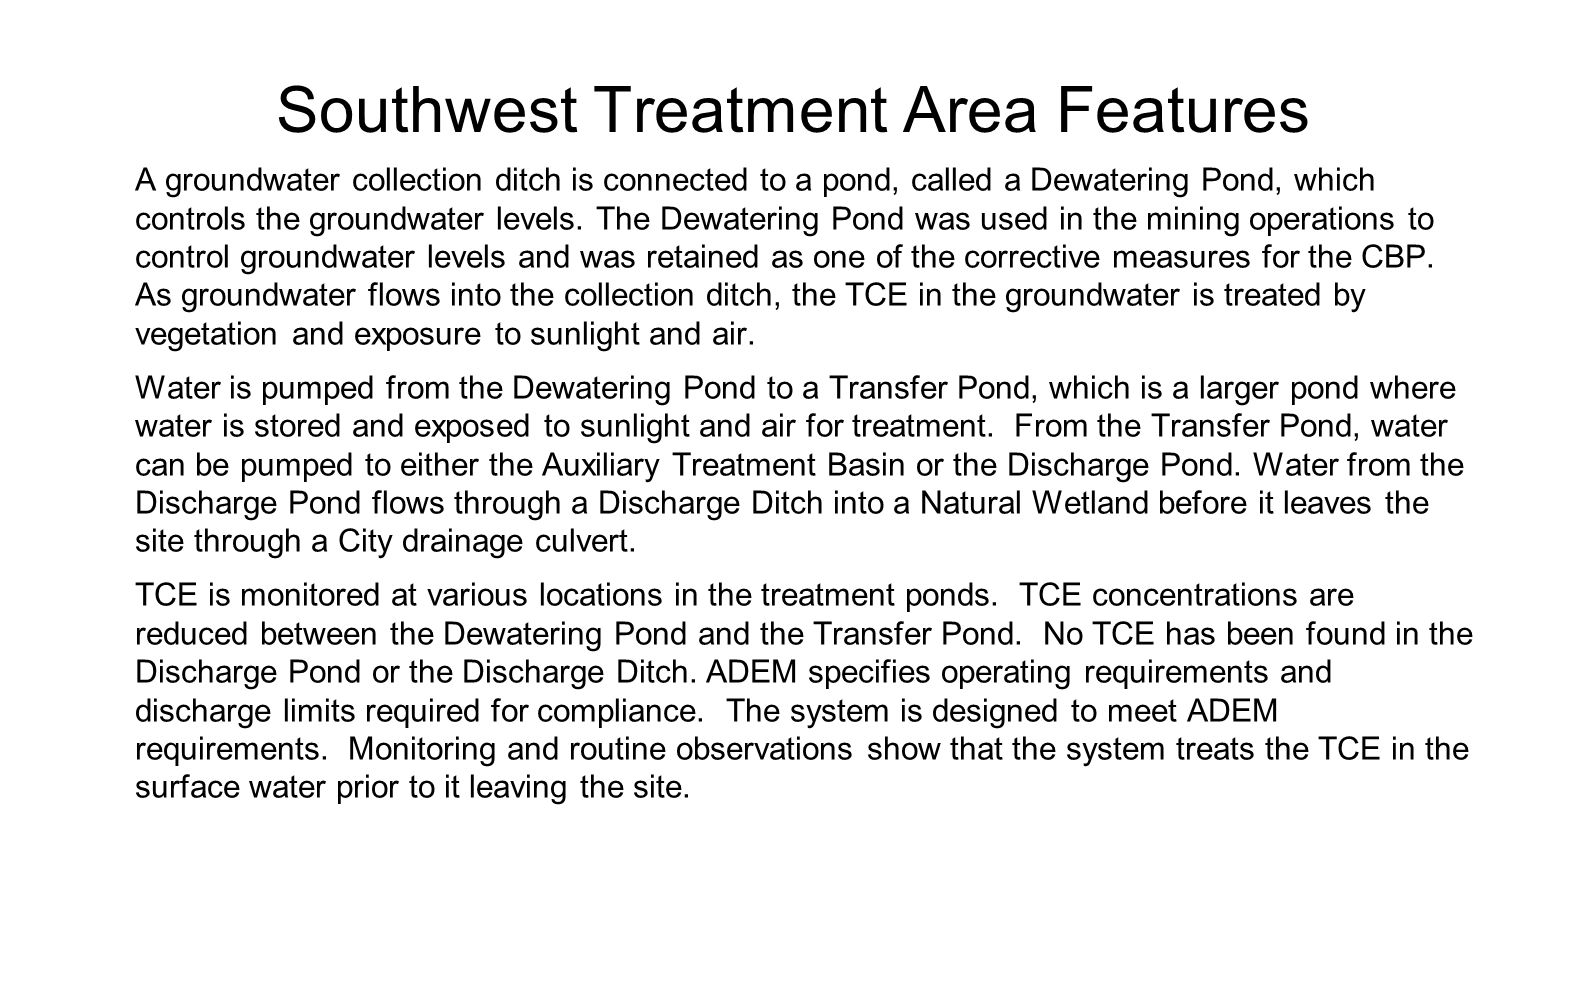 Southwest Treatment Area Features A groundwater collection ditch is connected to a pond, called a Dewatering Pond, which controls the groundwater levels.